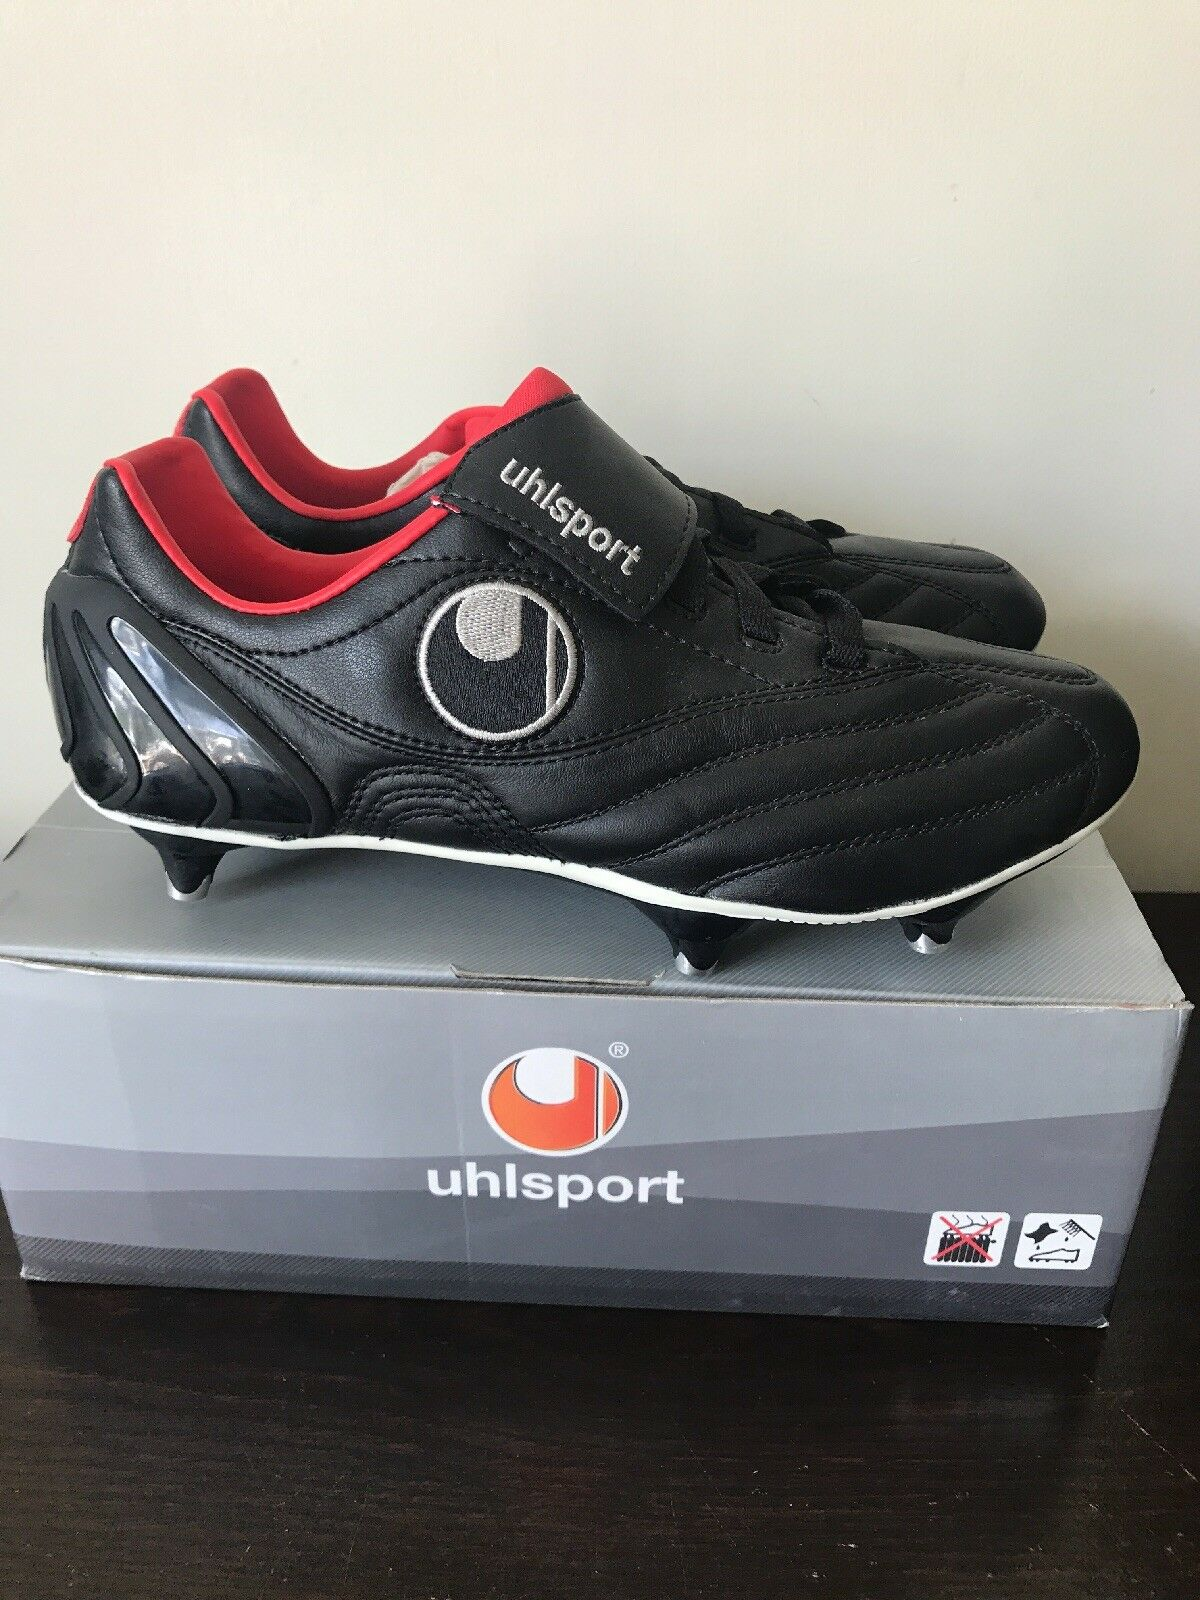 Uhlsport Football Boots Size 7